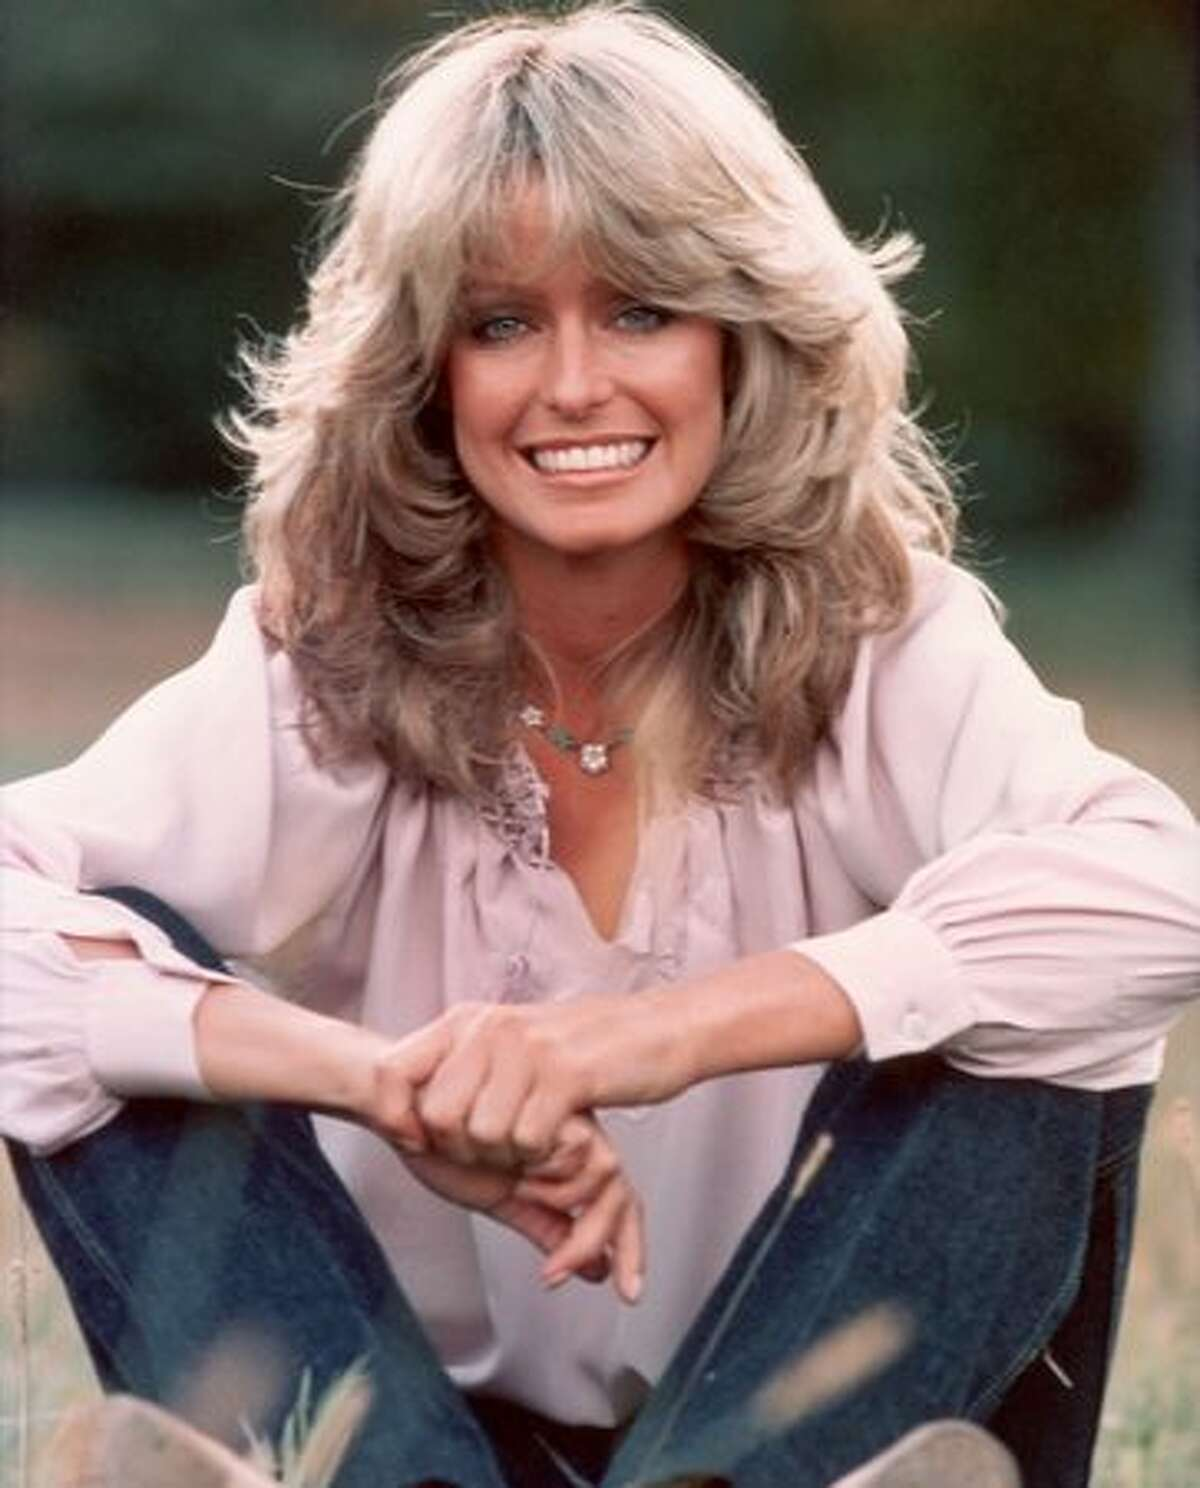 Publicity portrait of American actor and actress Farrah Fawcett, circa 1975. Fawcett died Thursday, June 25, 2009, at a hospital in Los Angeles. She was 62.